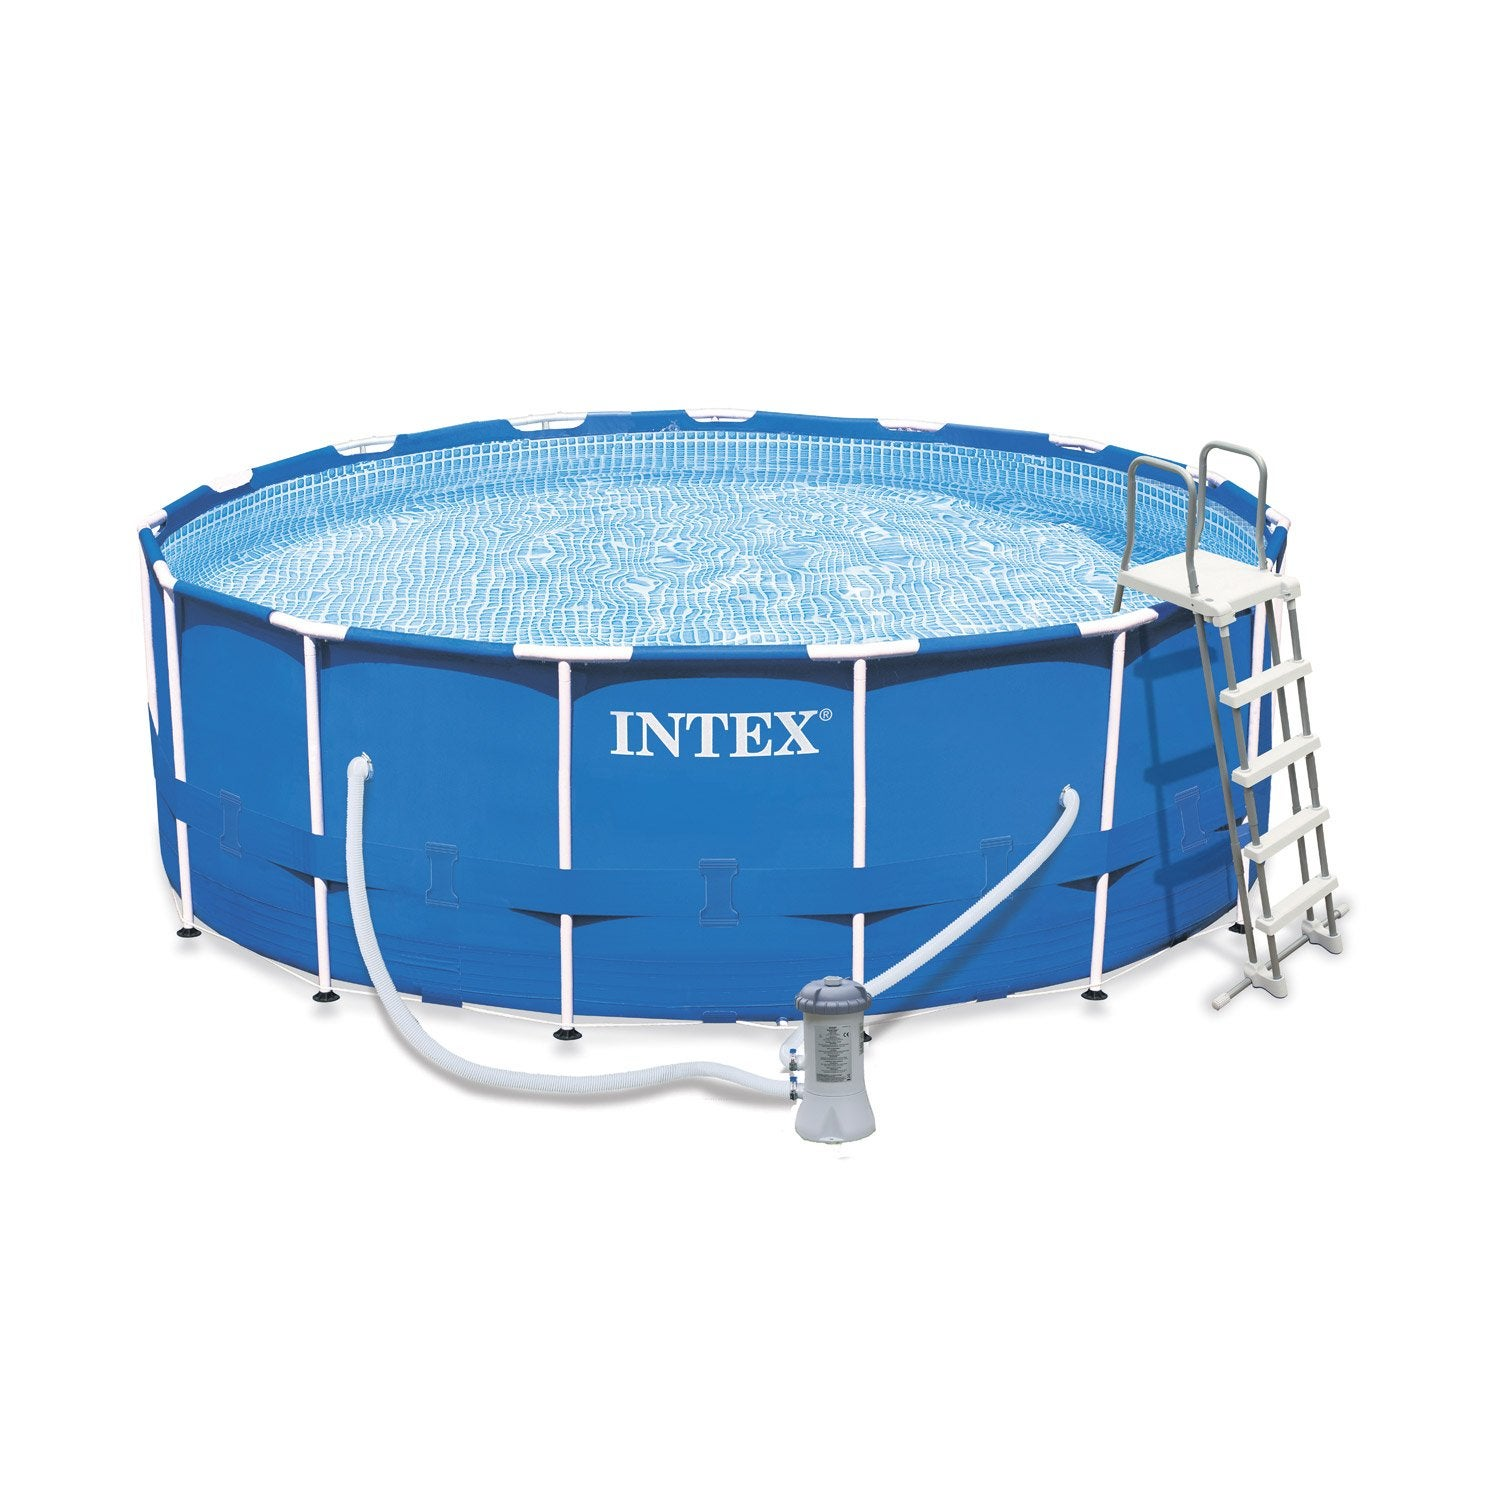 Piscine hors sol autoportante tubulaire metal frame intex for Piscine hors sol tarif